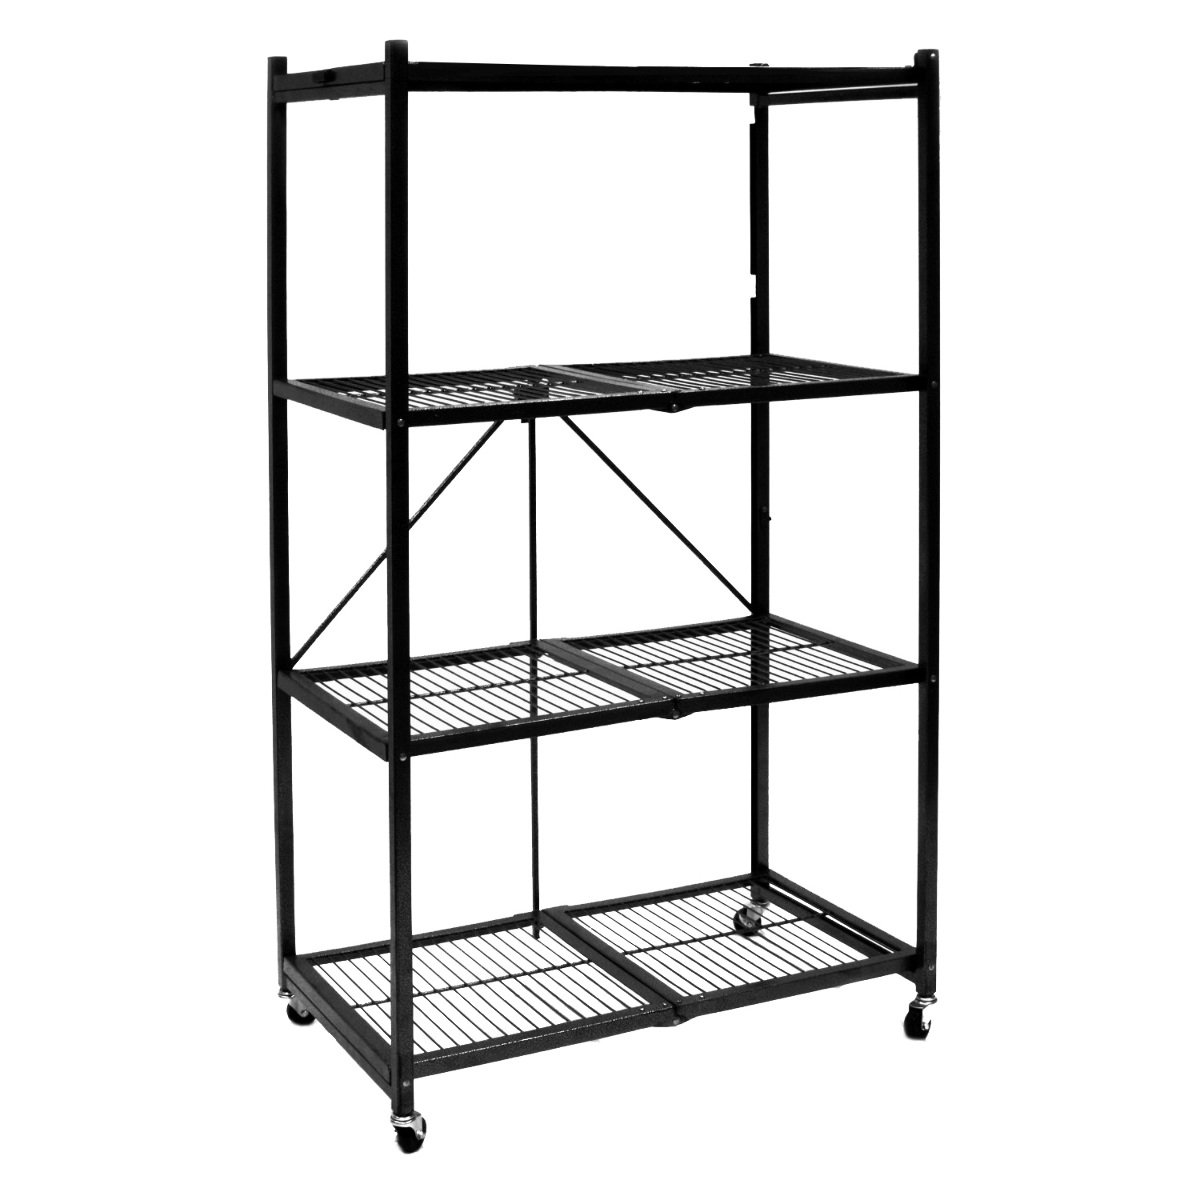 Exceptionnel Amazon.com: Origami Storage Solutions R1407W Four Shelf Steel Collapsible  Garage Storage Rack W/ Wheels: Home U0026 Kitchen